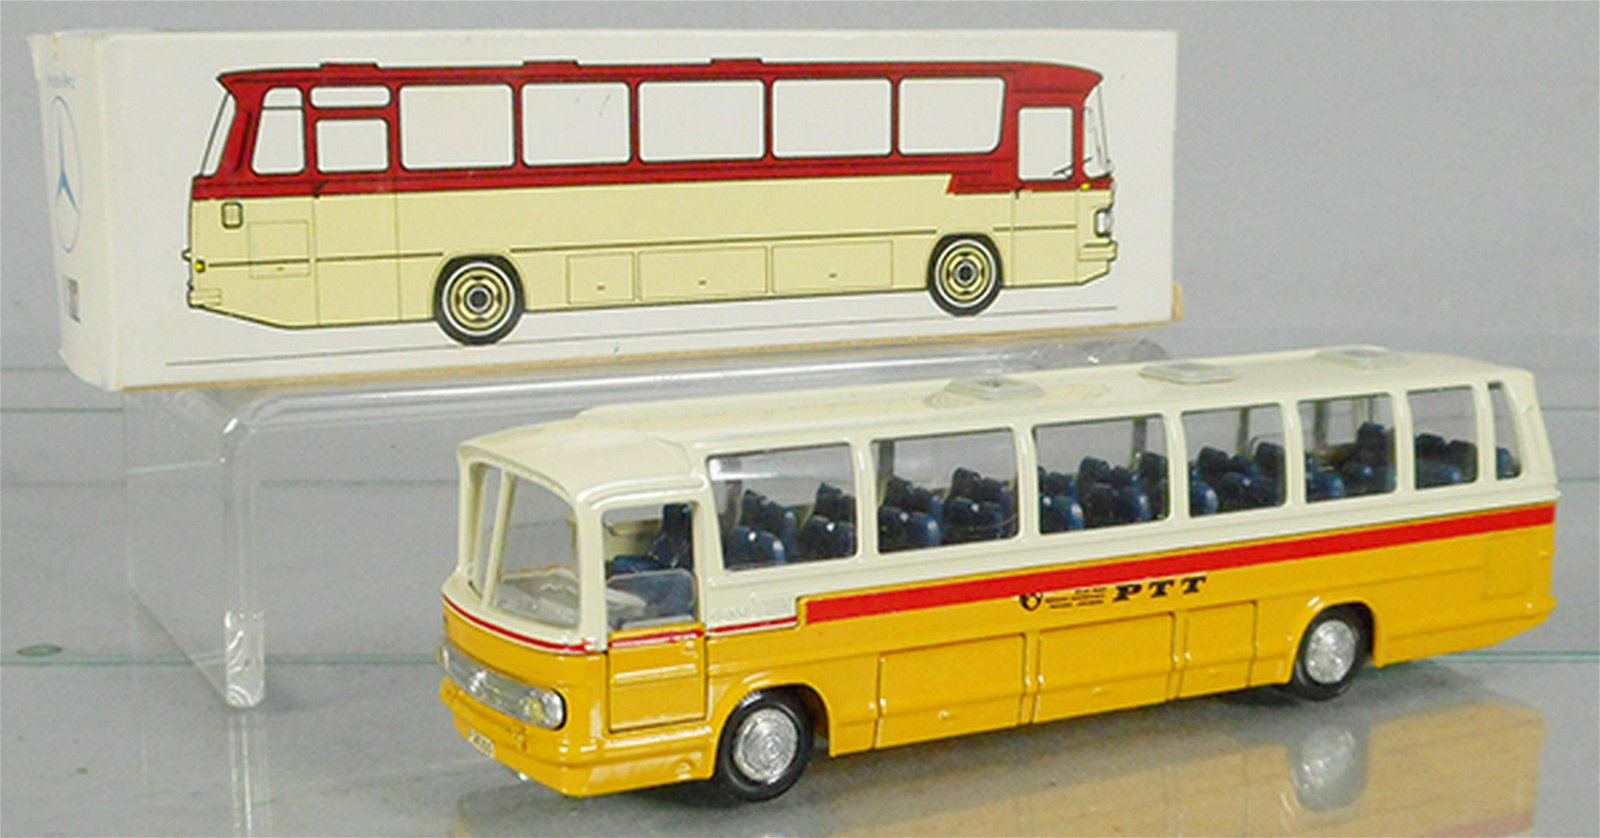 TEKNO MERCEDES BENZ 0302 BUS